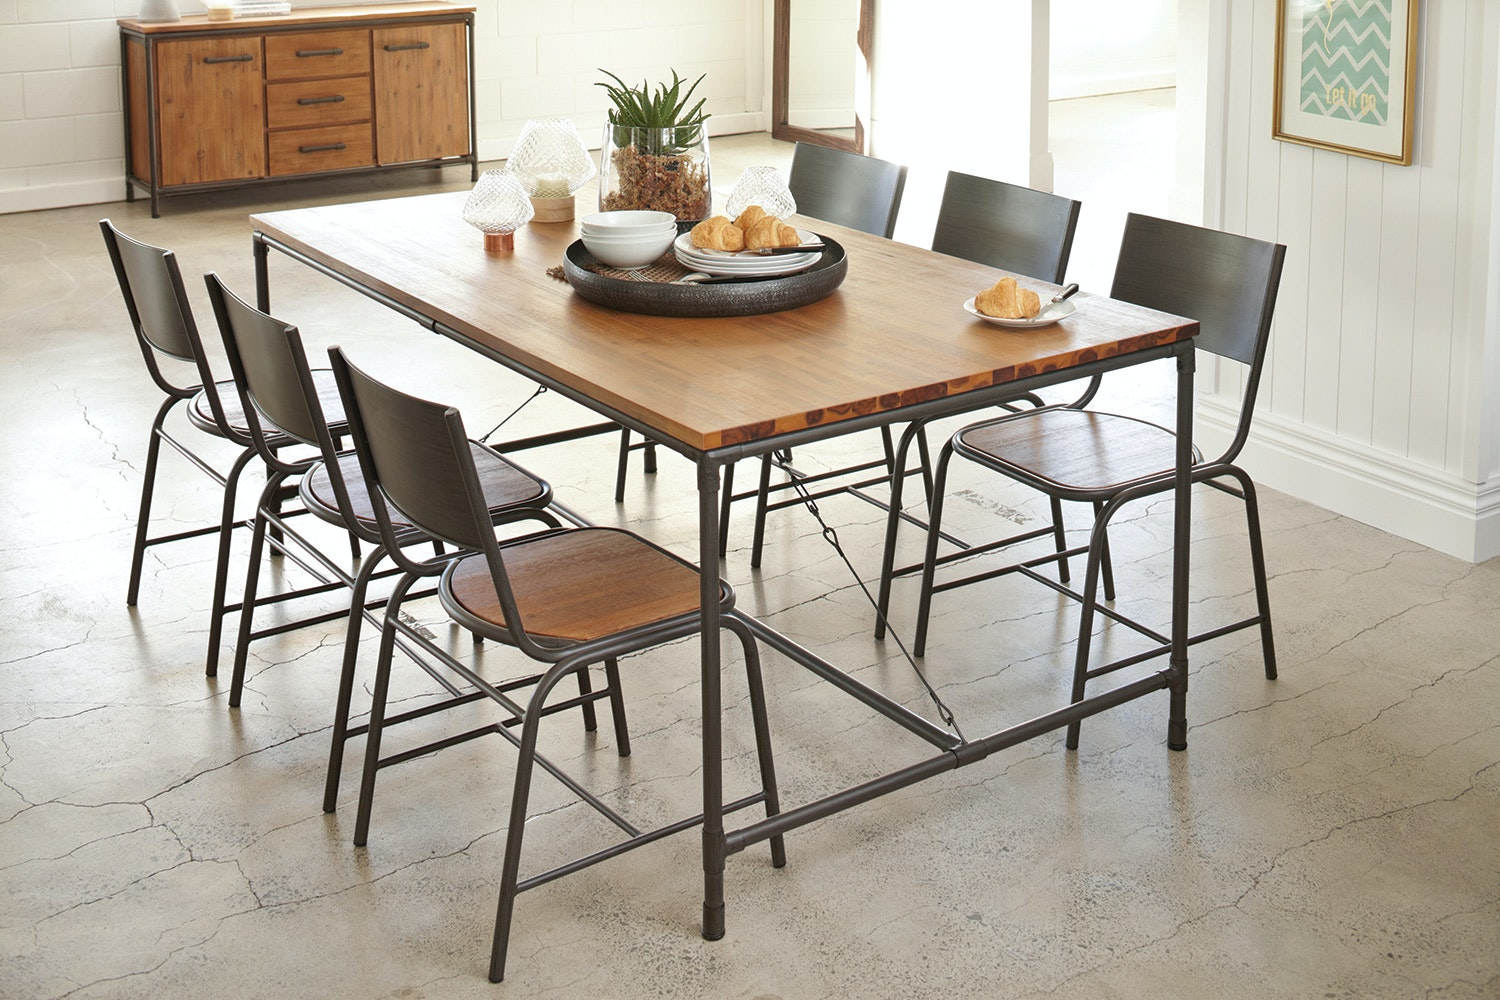 Atelier 7 Piece Dining Suite by Dixie Cummings